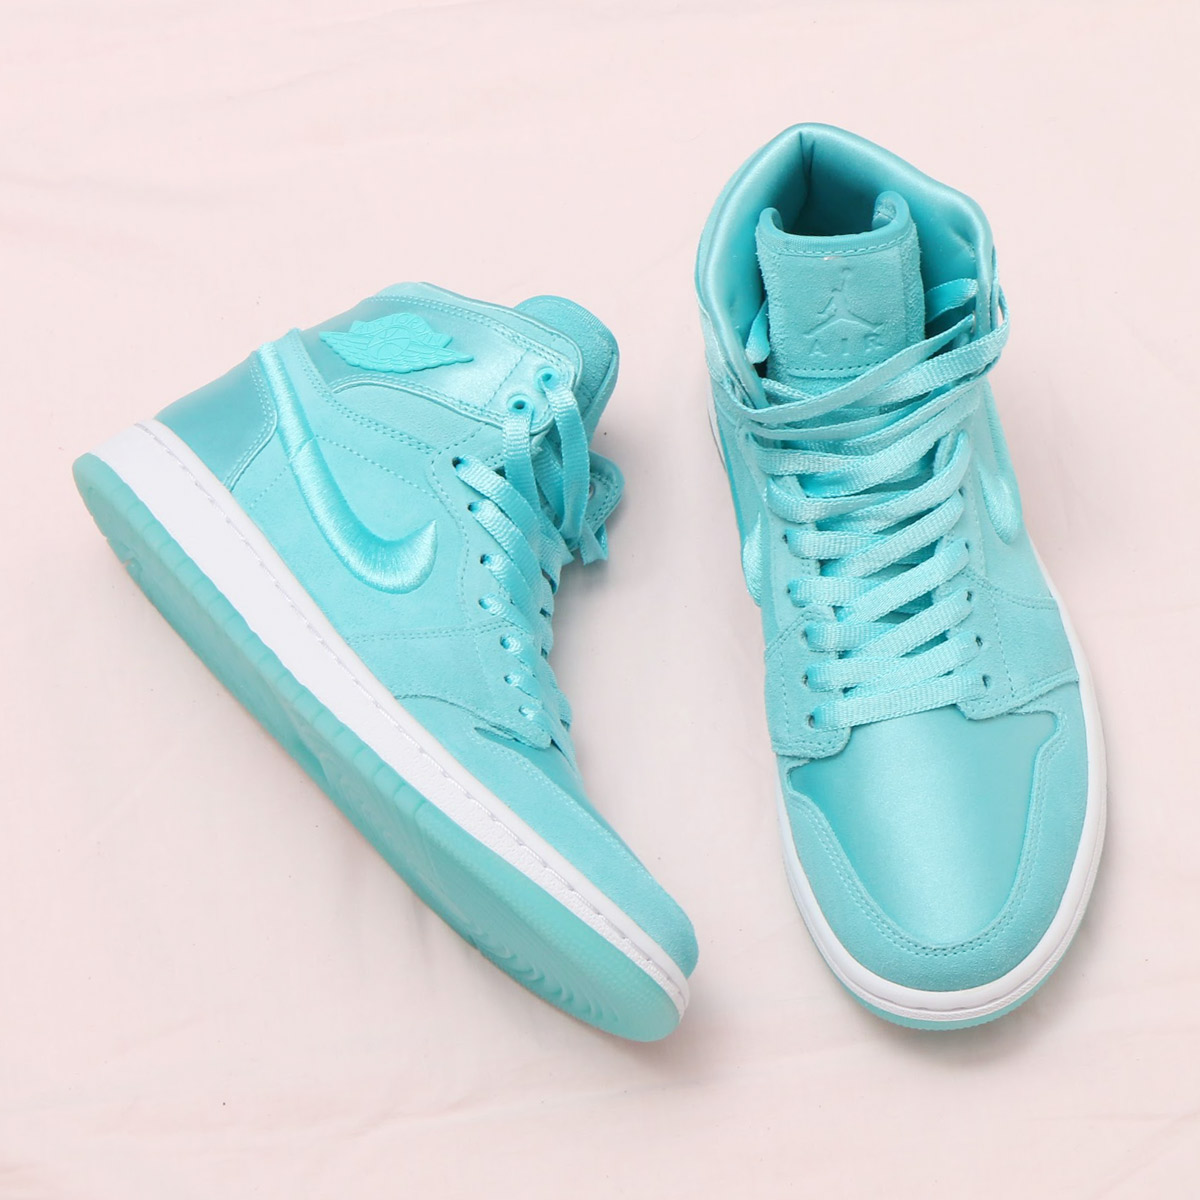 NIKE WMNS AIR JORDAN 1 RET HIGH SOH (Nike women Air Jordan 1 nostalgic high  SOH) (LIGHT AQUA WHITE-METALLIC GOLD) 18SP-S 1d37808ddb